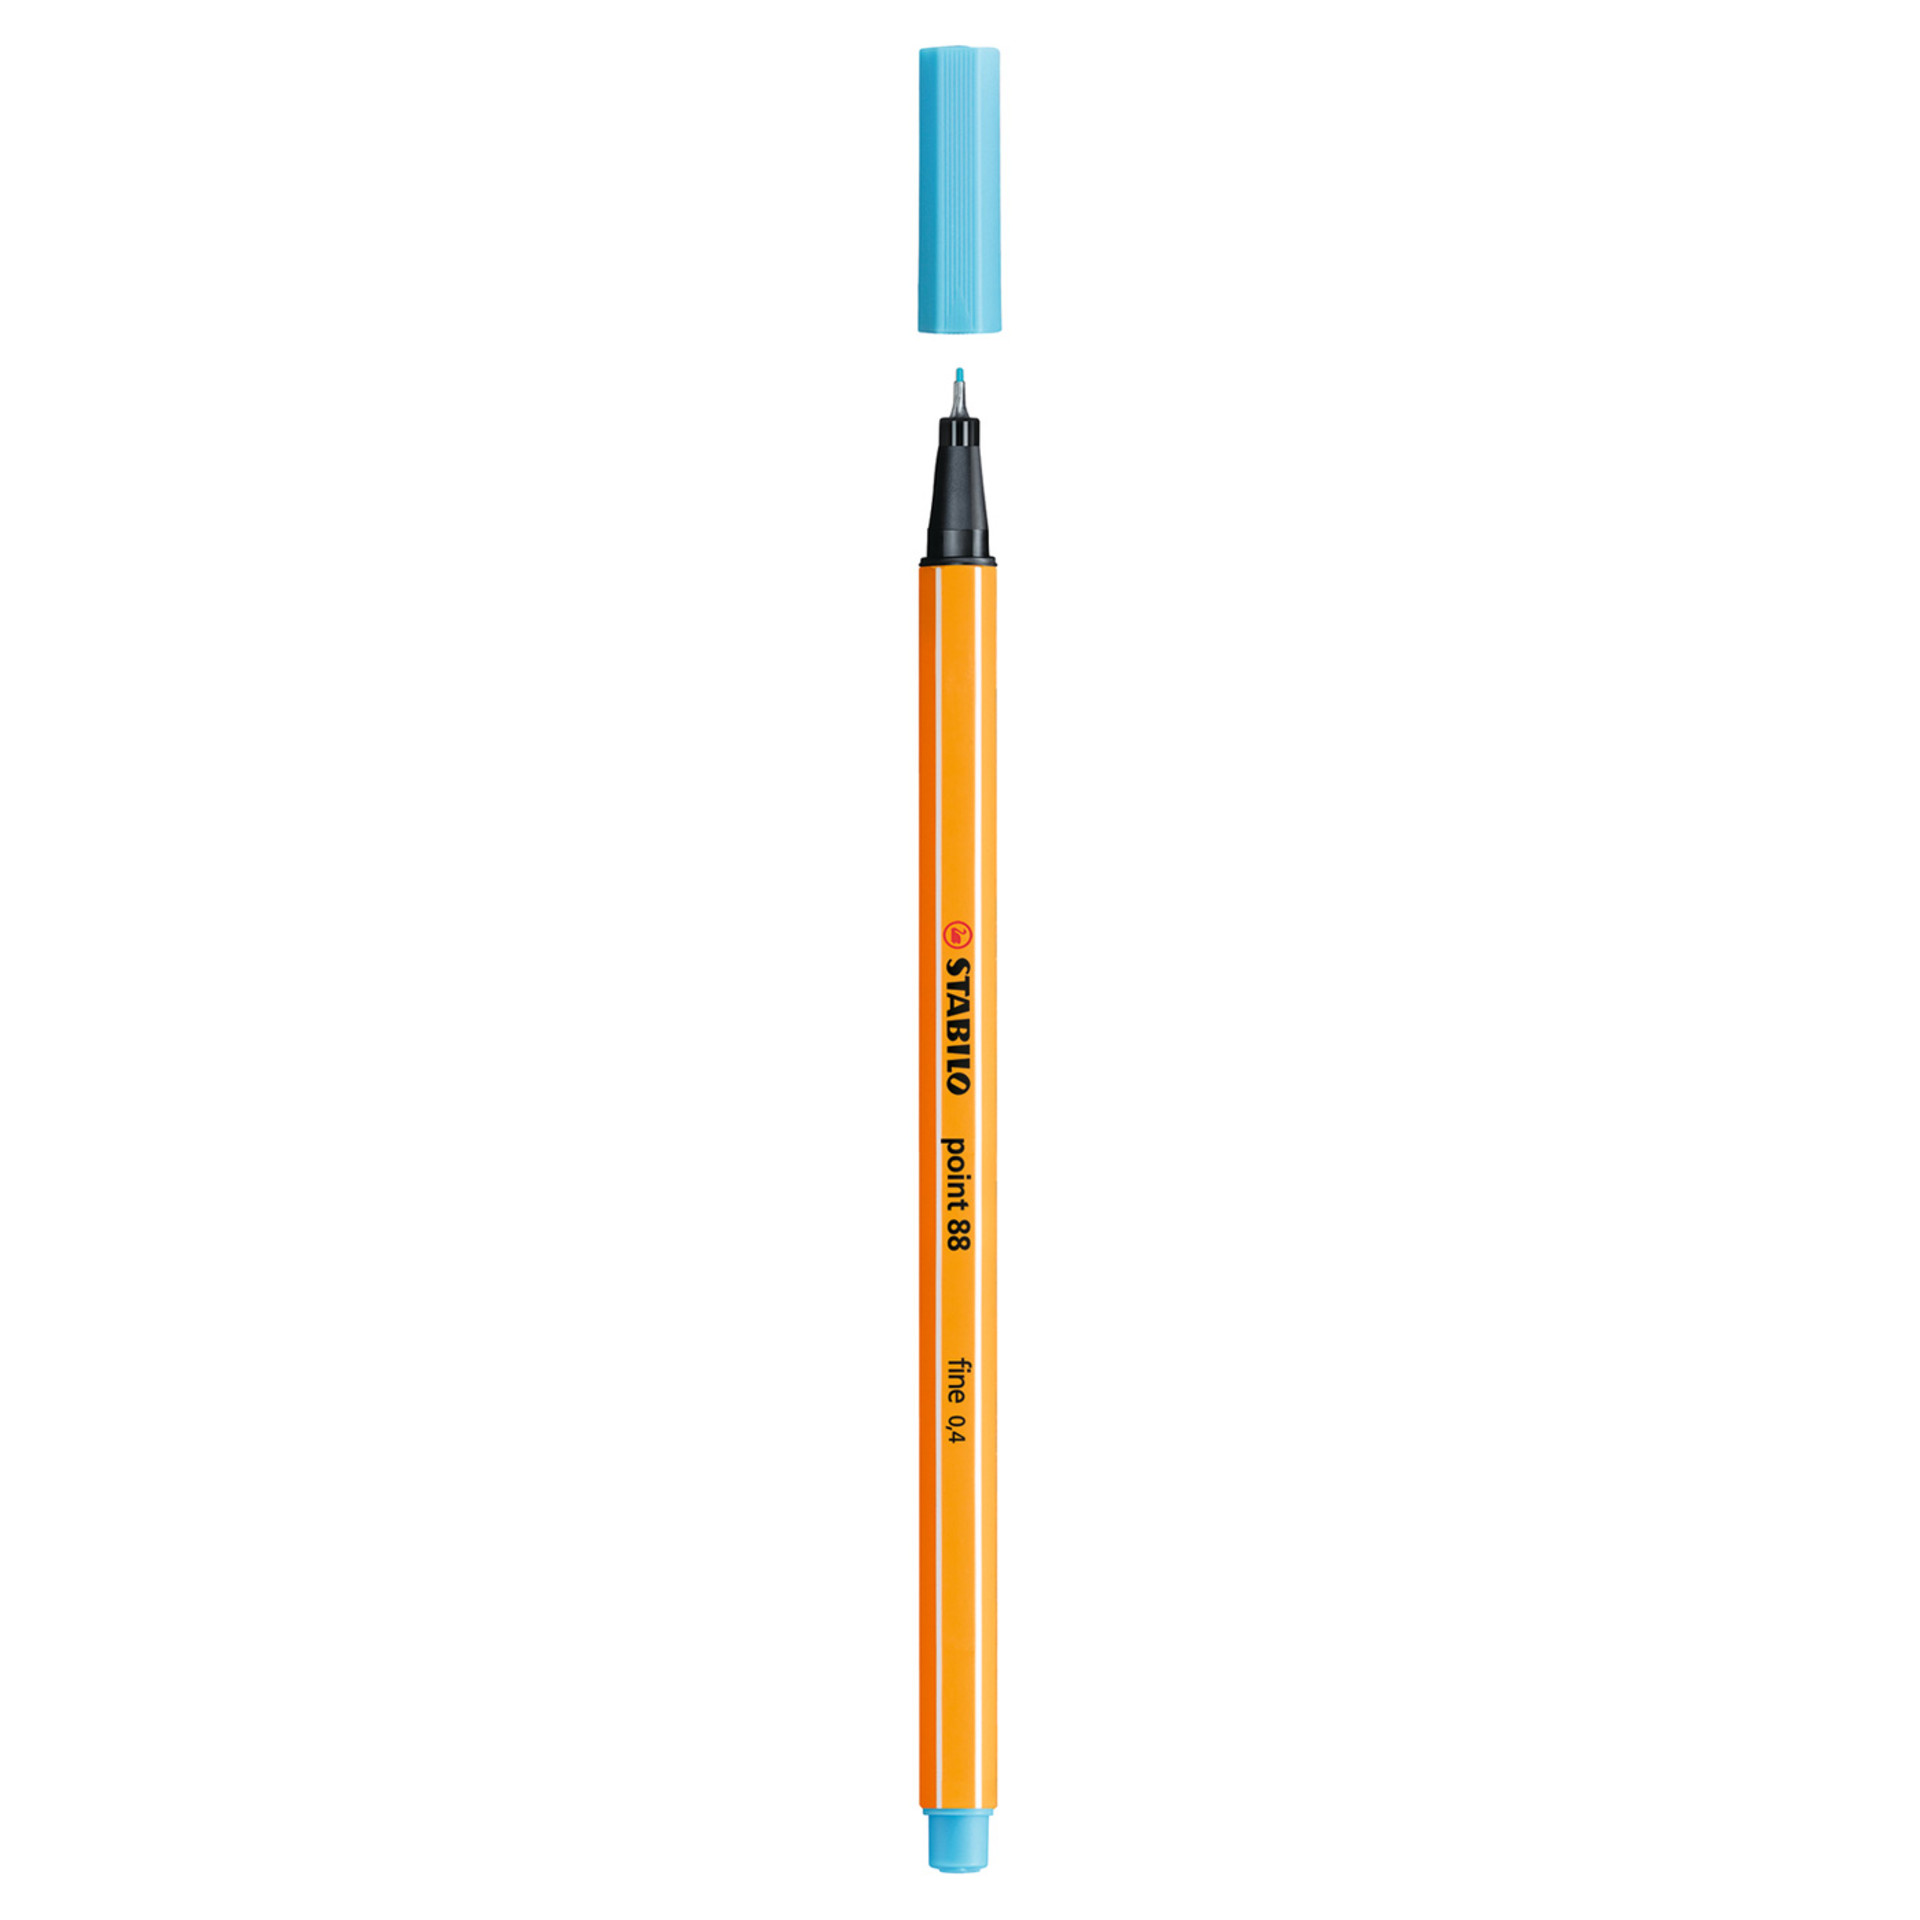 Stabilo Point 88 .4mm Fineliner Pen – Azure